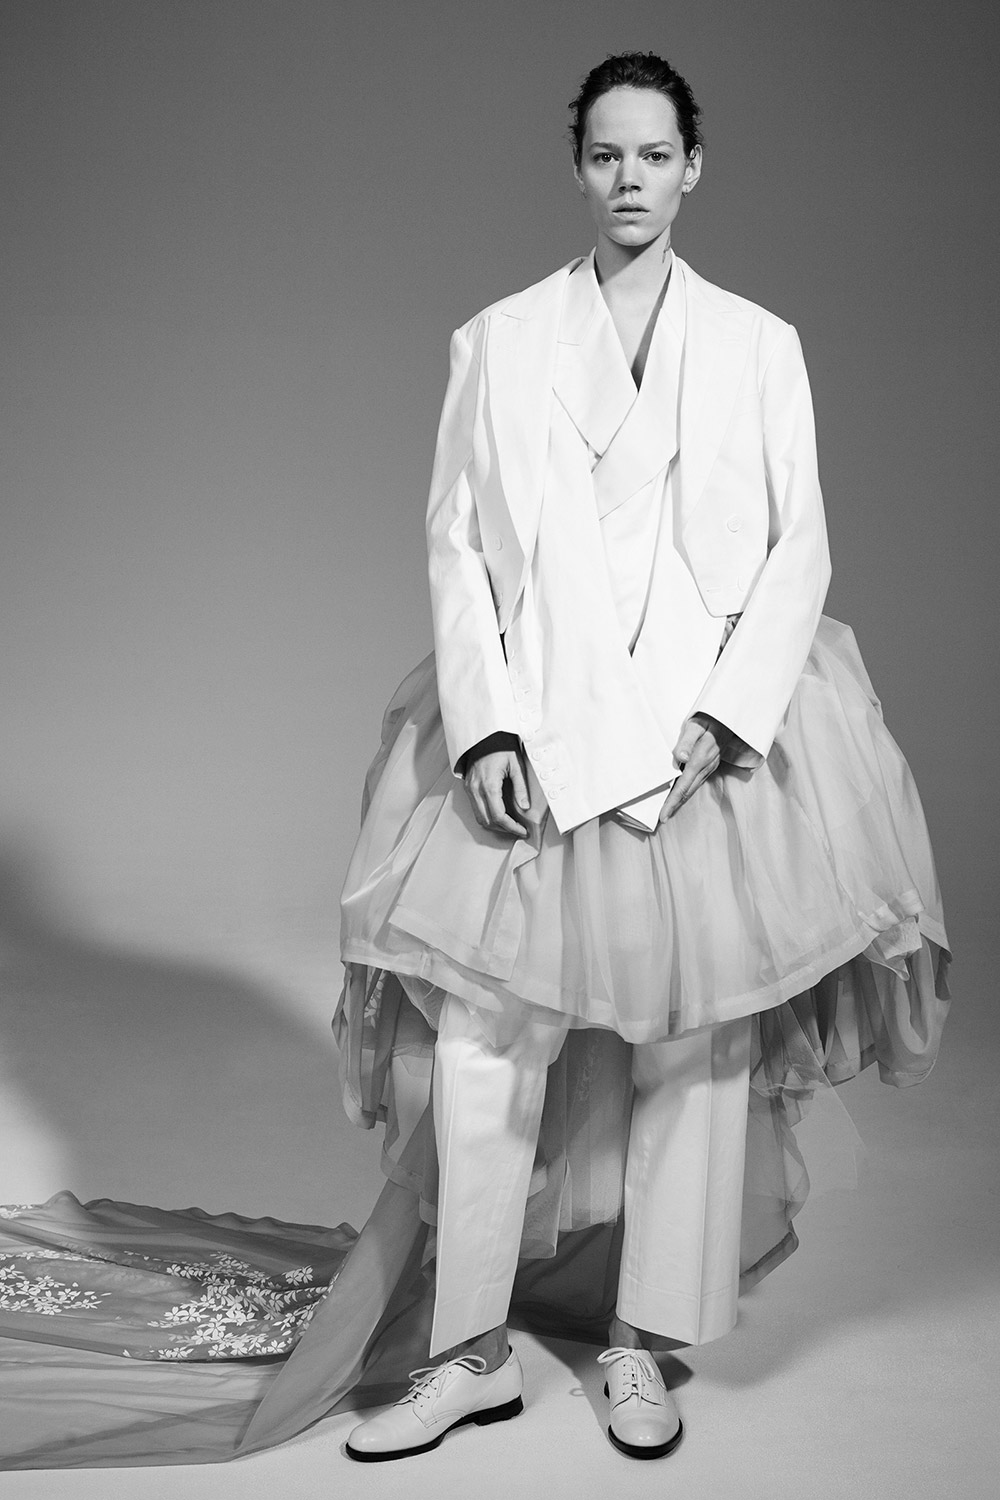 Freja Beha by Collier Schorr for The Met Costume Institute / Rei Kawakubo Exhibition